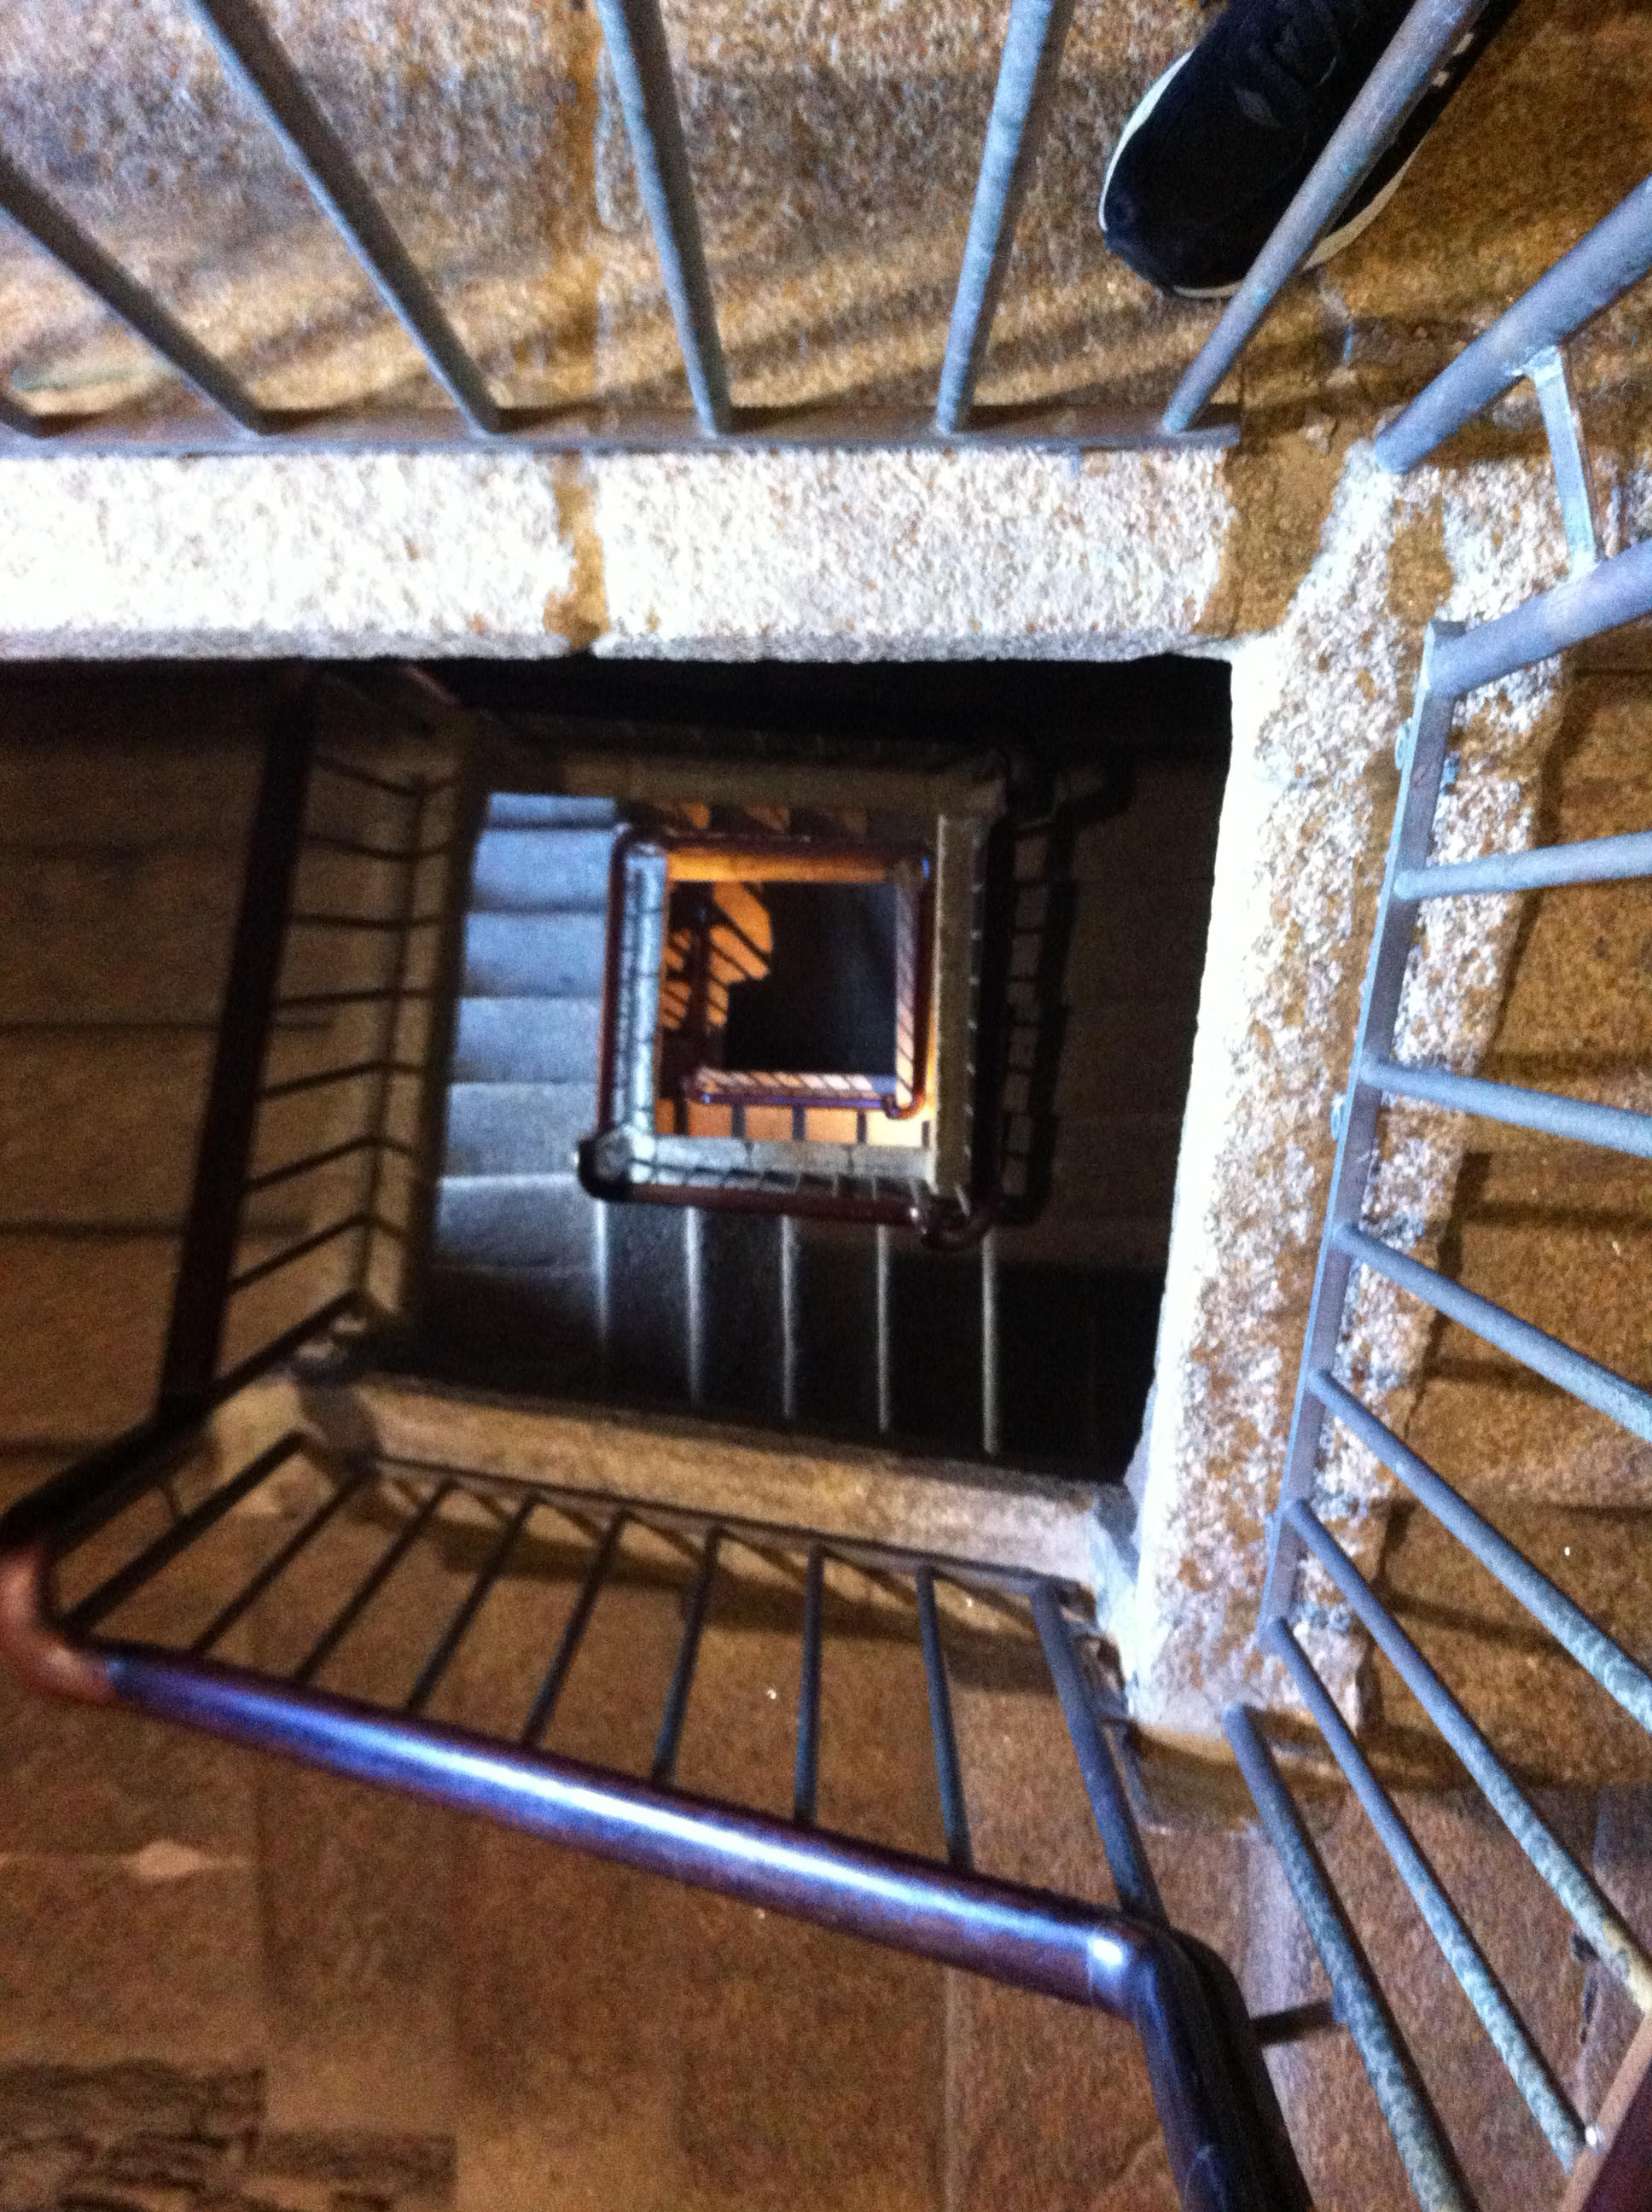 Tower of Hercules stairs